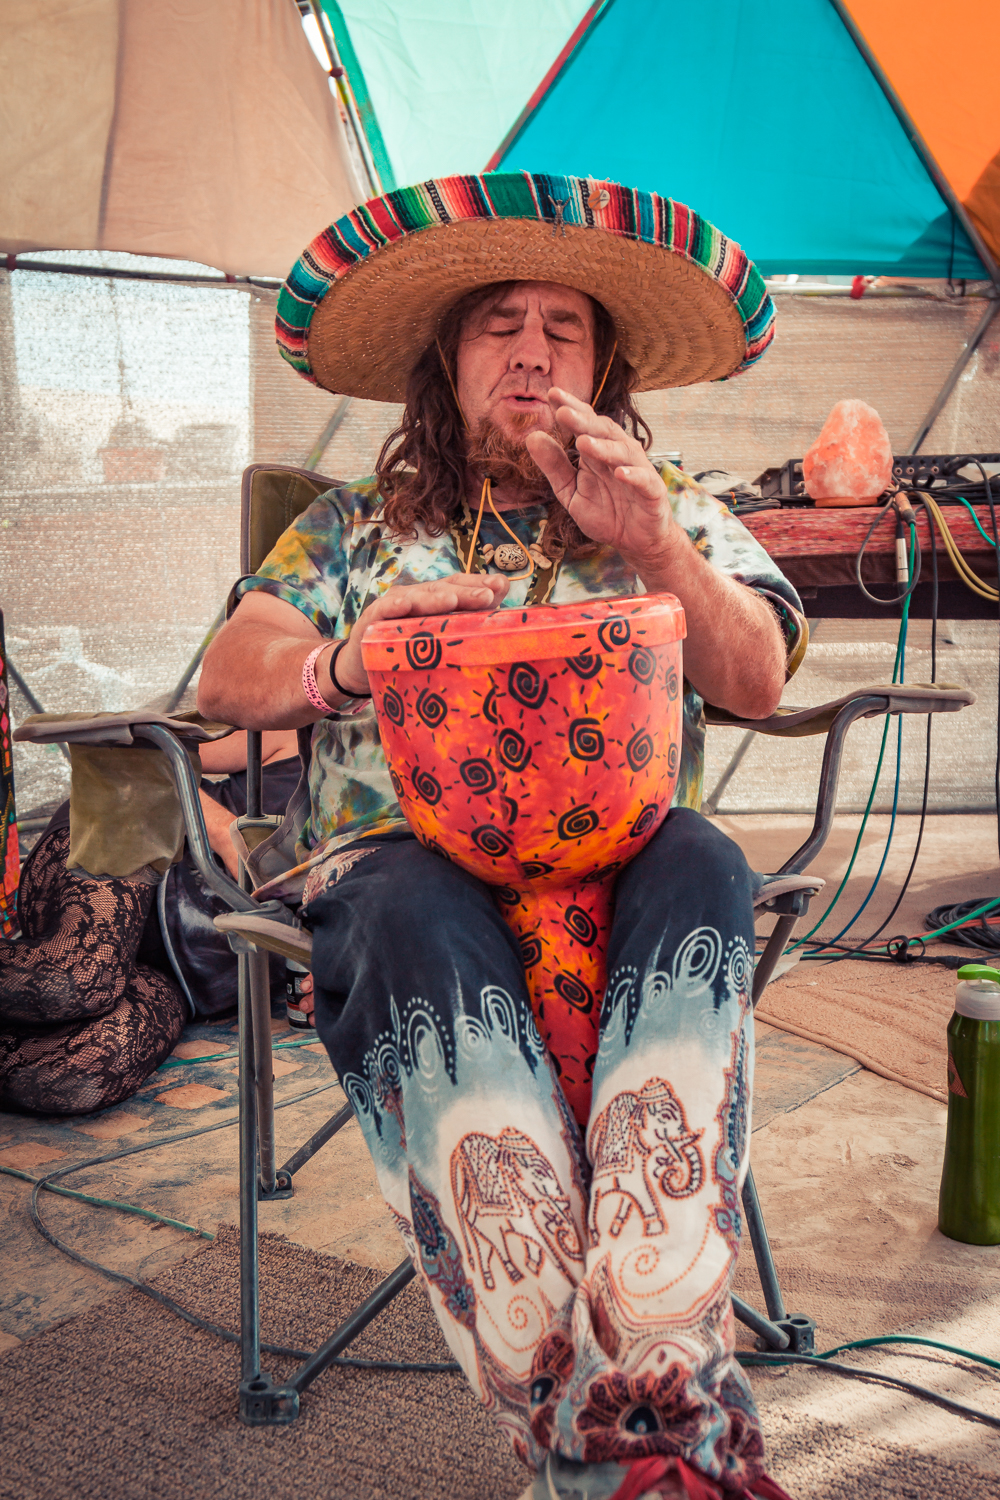 20160829-Burning man-96.jpg